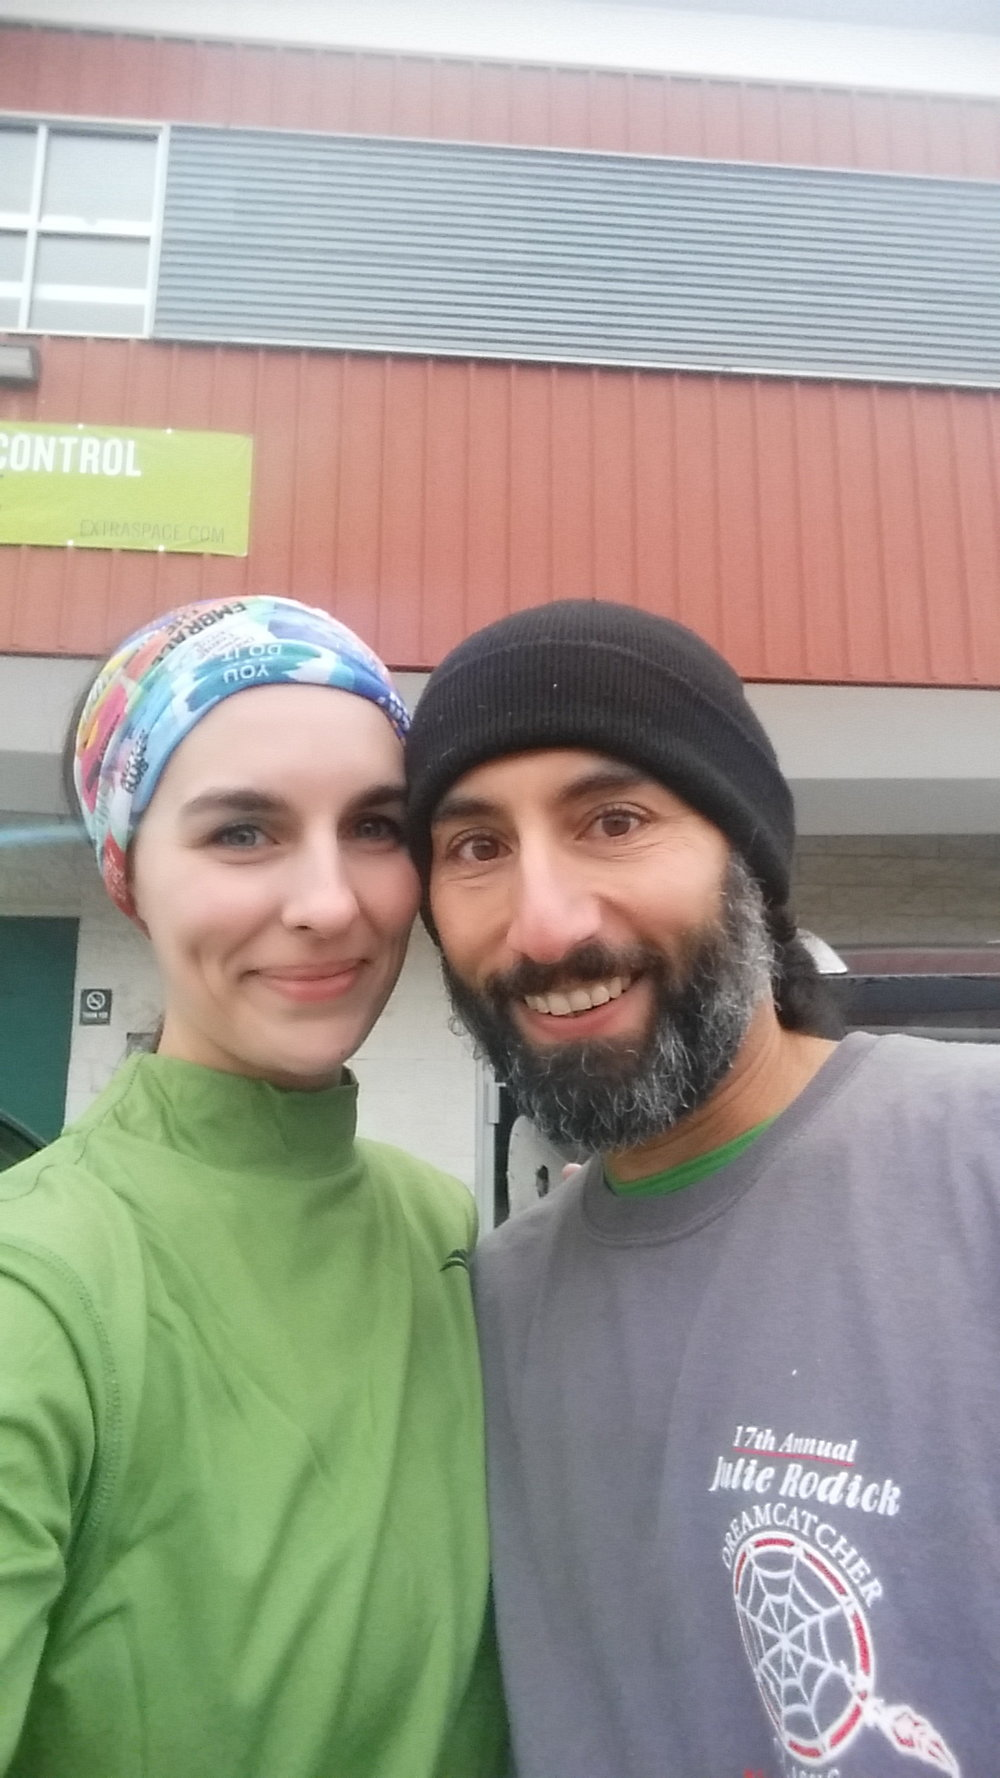 Post race photo at the Dreamcatch Classic 5 miler in 2016. We run this race everything Thanksgiving.